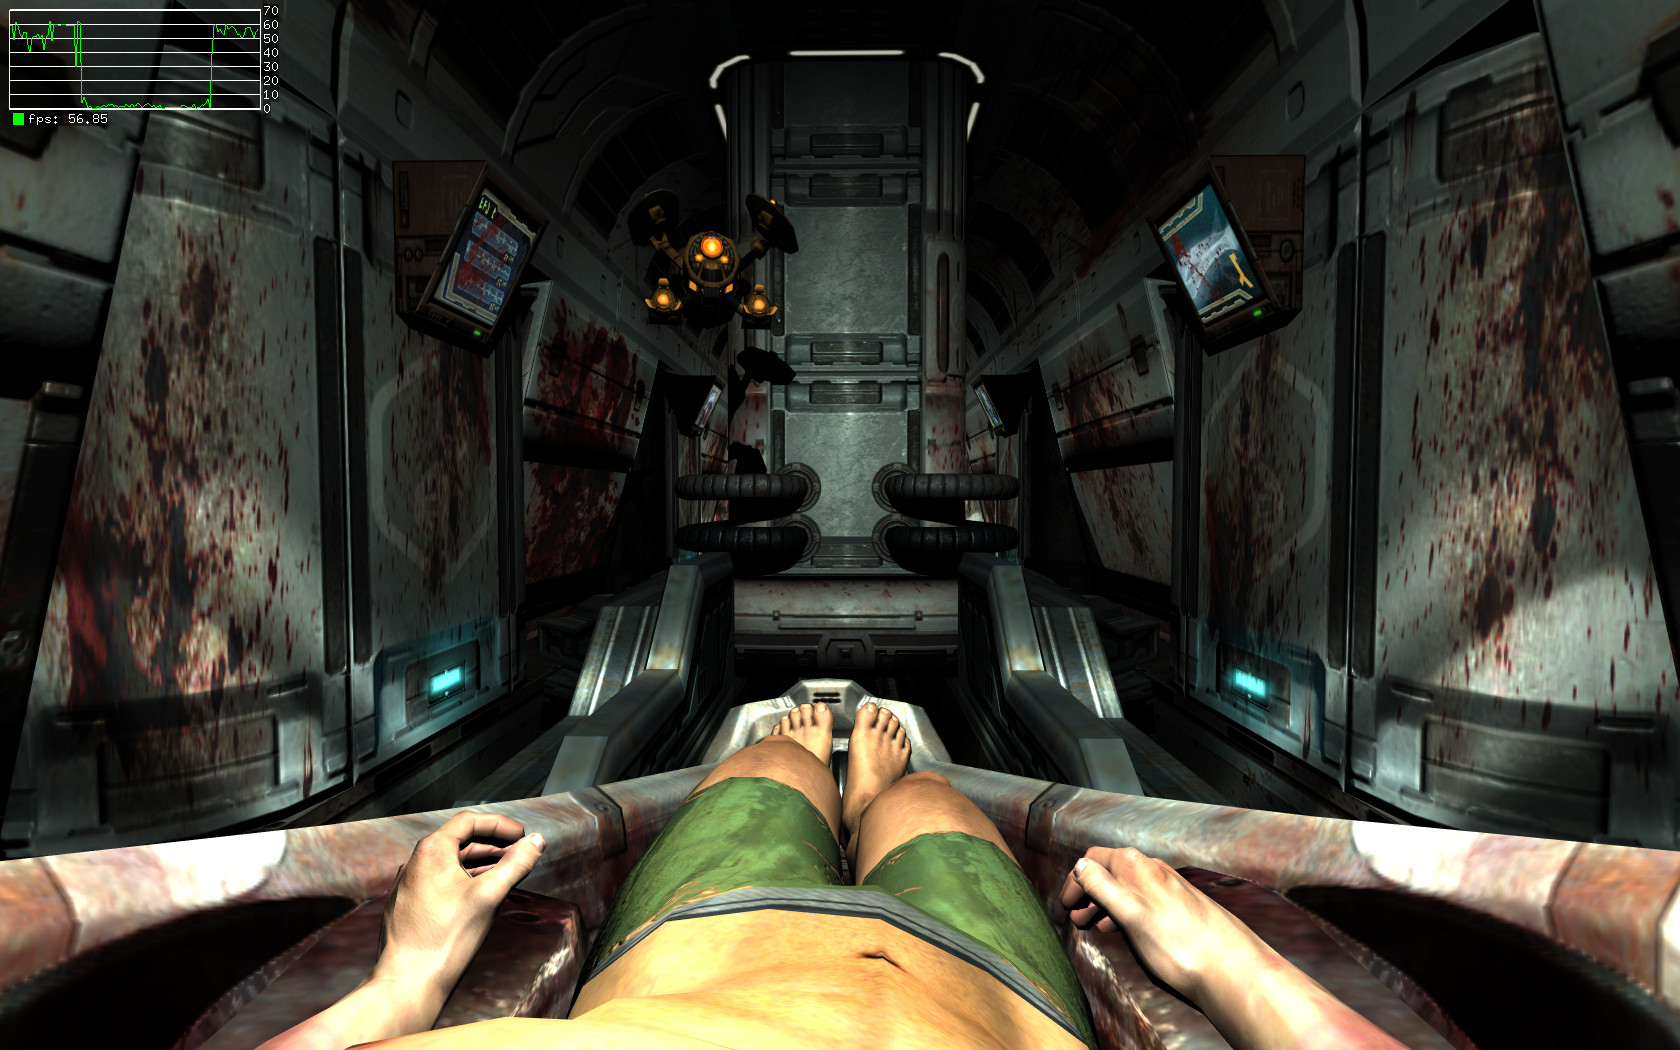 Playing Quake 4 on Linux in 2018 | GamingOnLinux